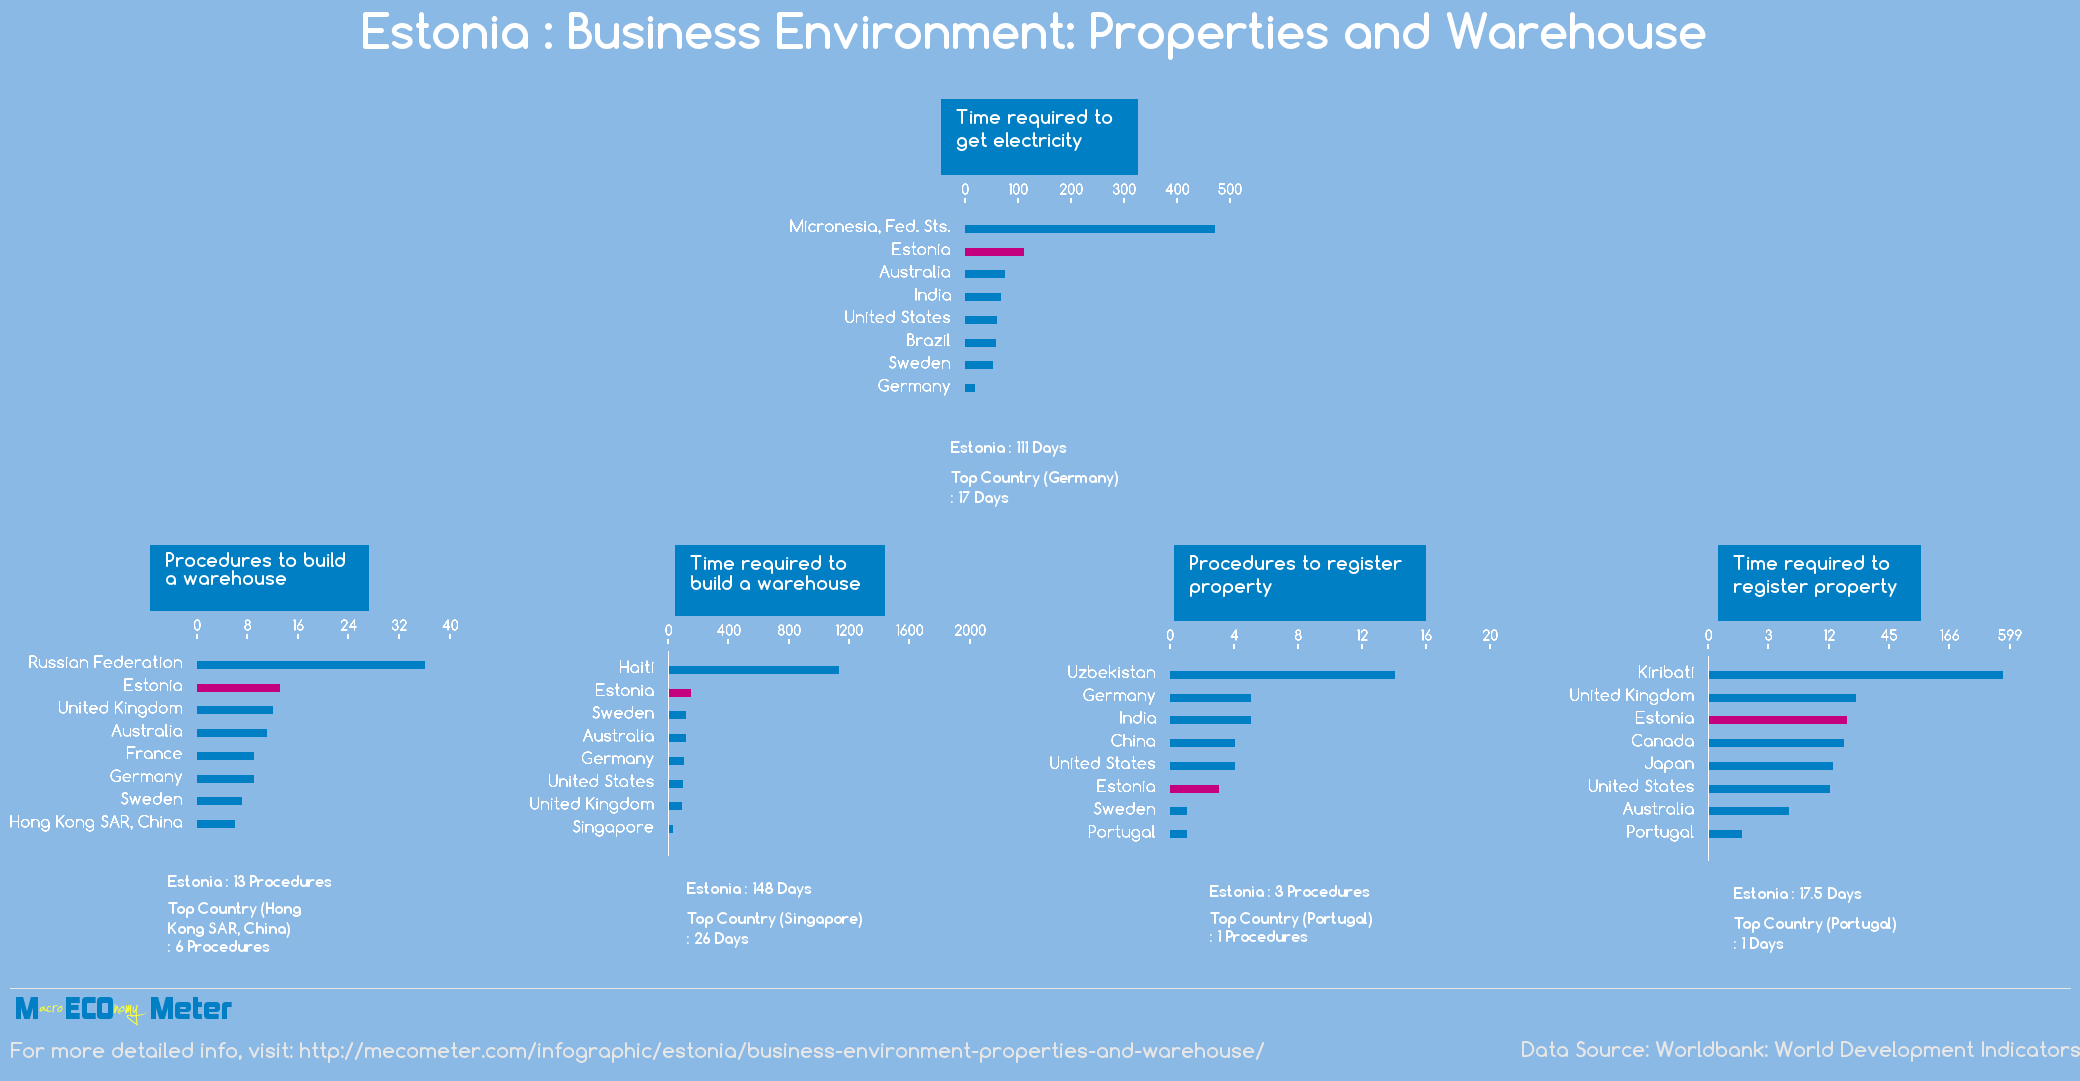 Estonia : Business Environment: Properties and Warehouse